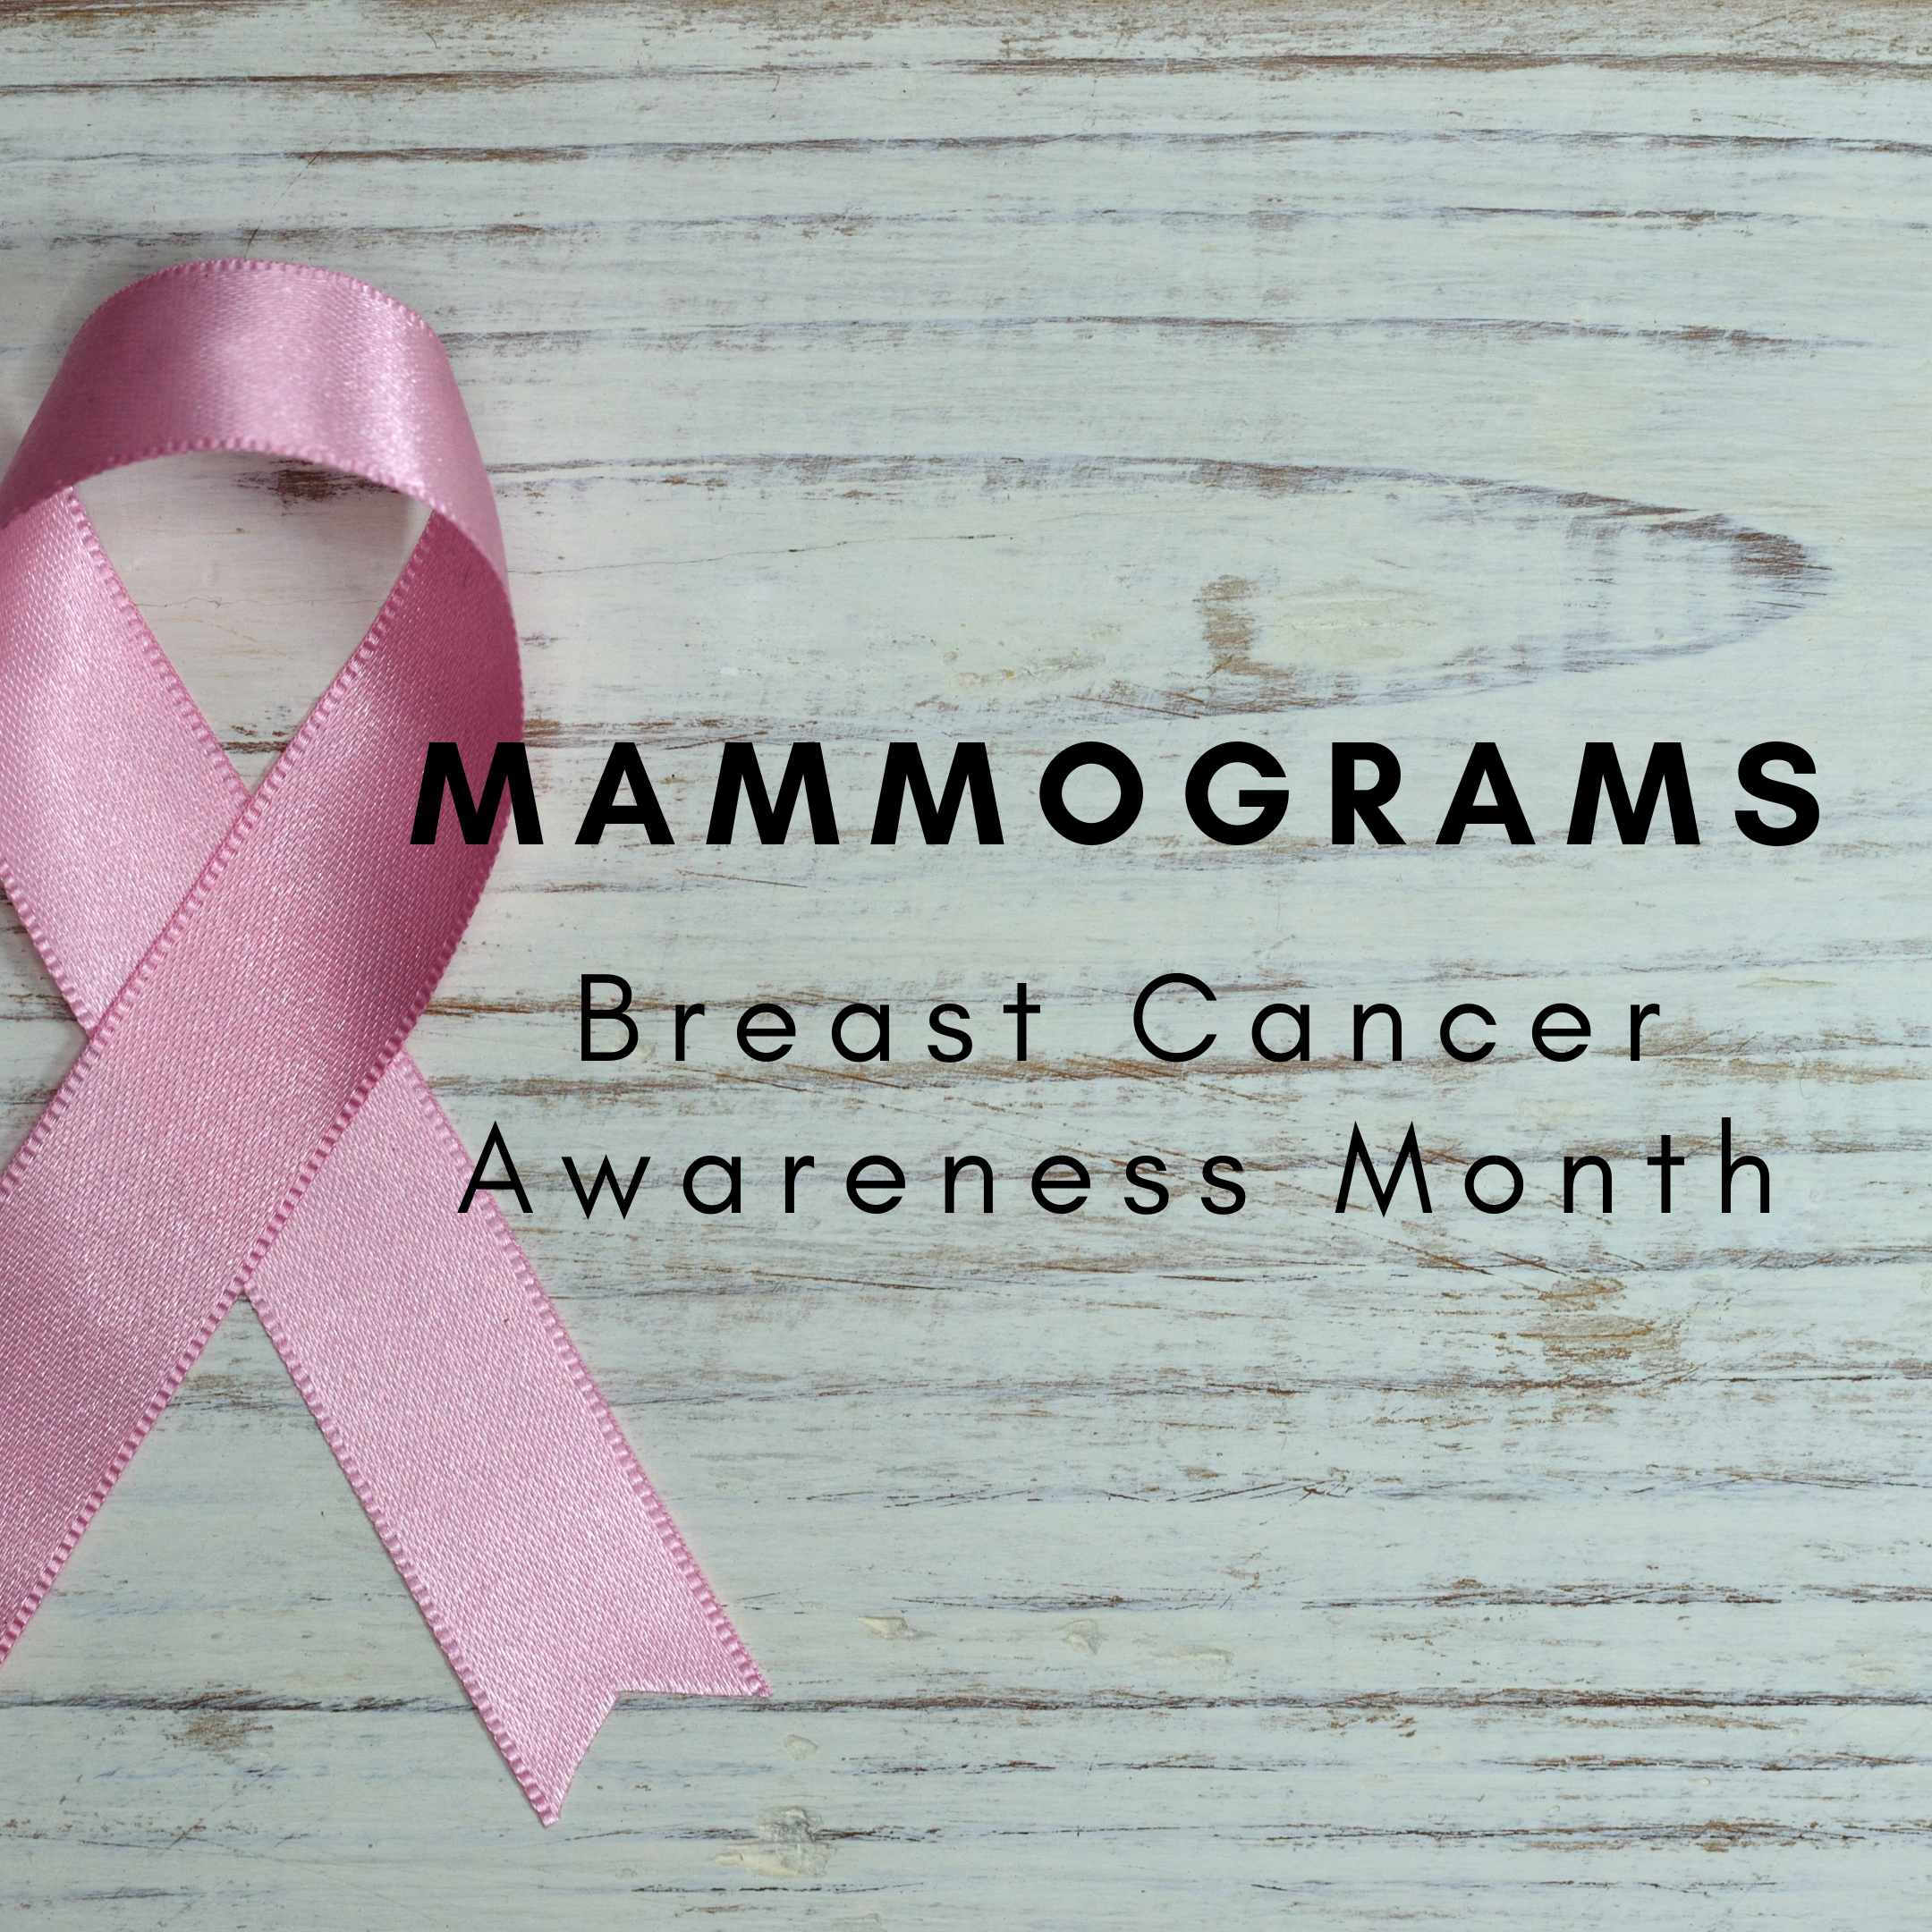 What it's like to get a mammogram, breast cancer awareness month